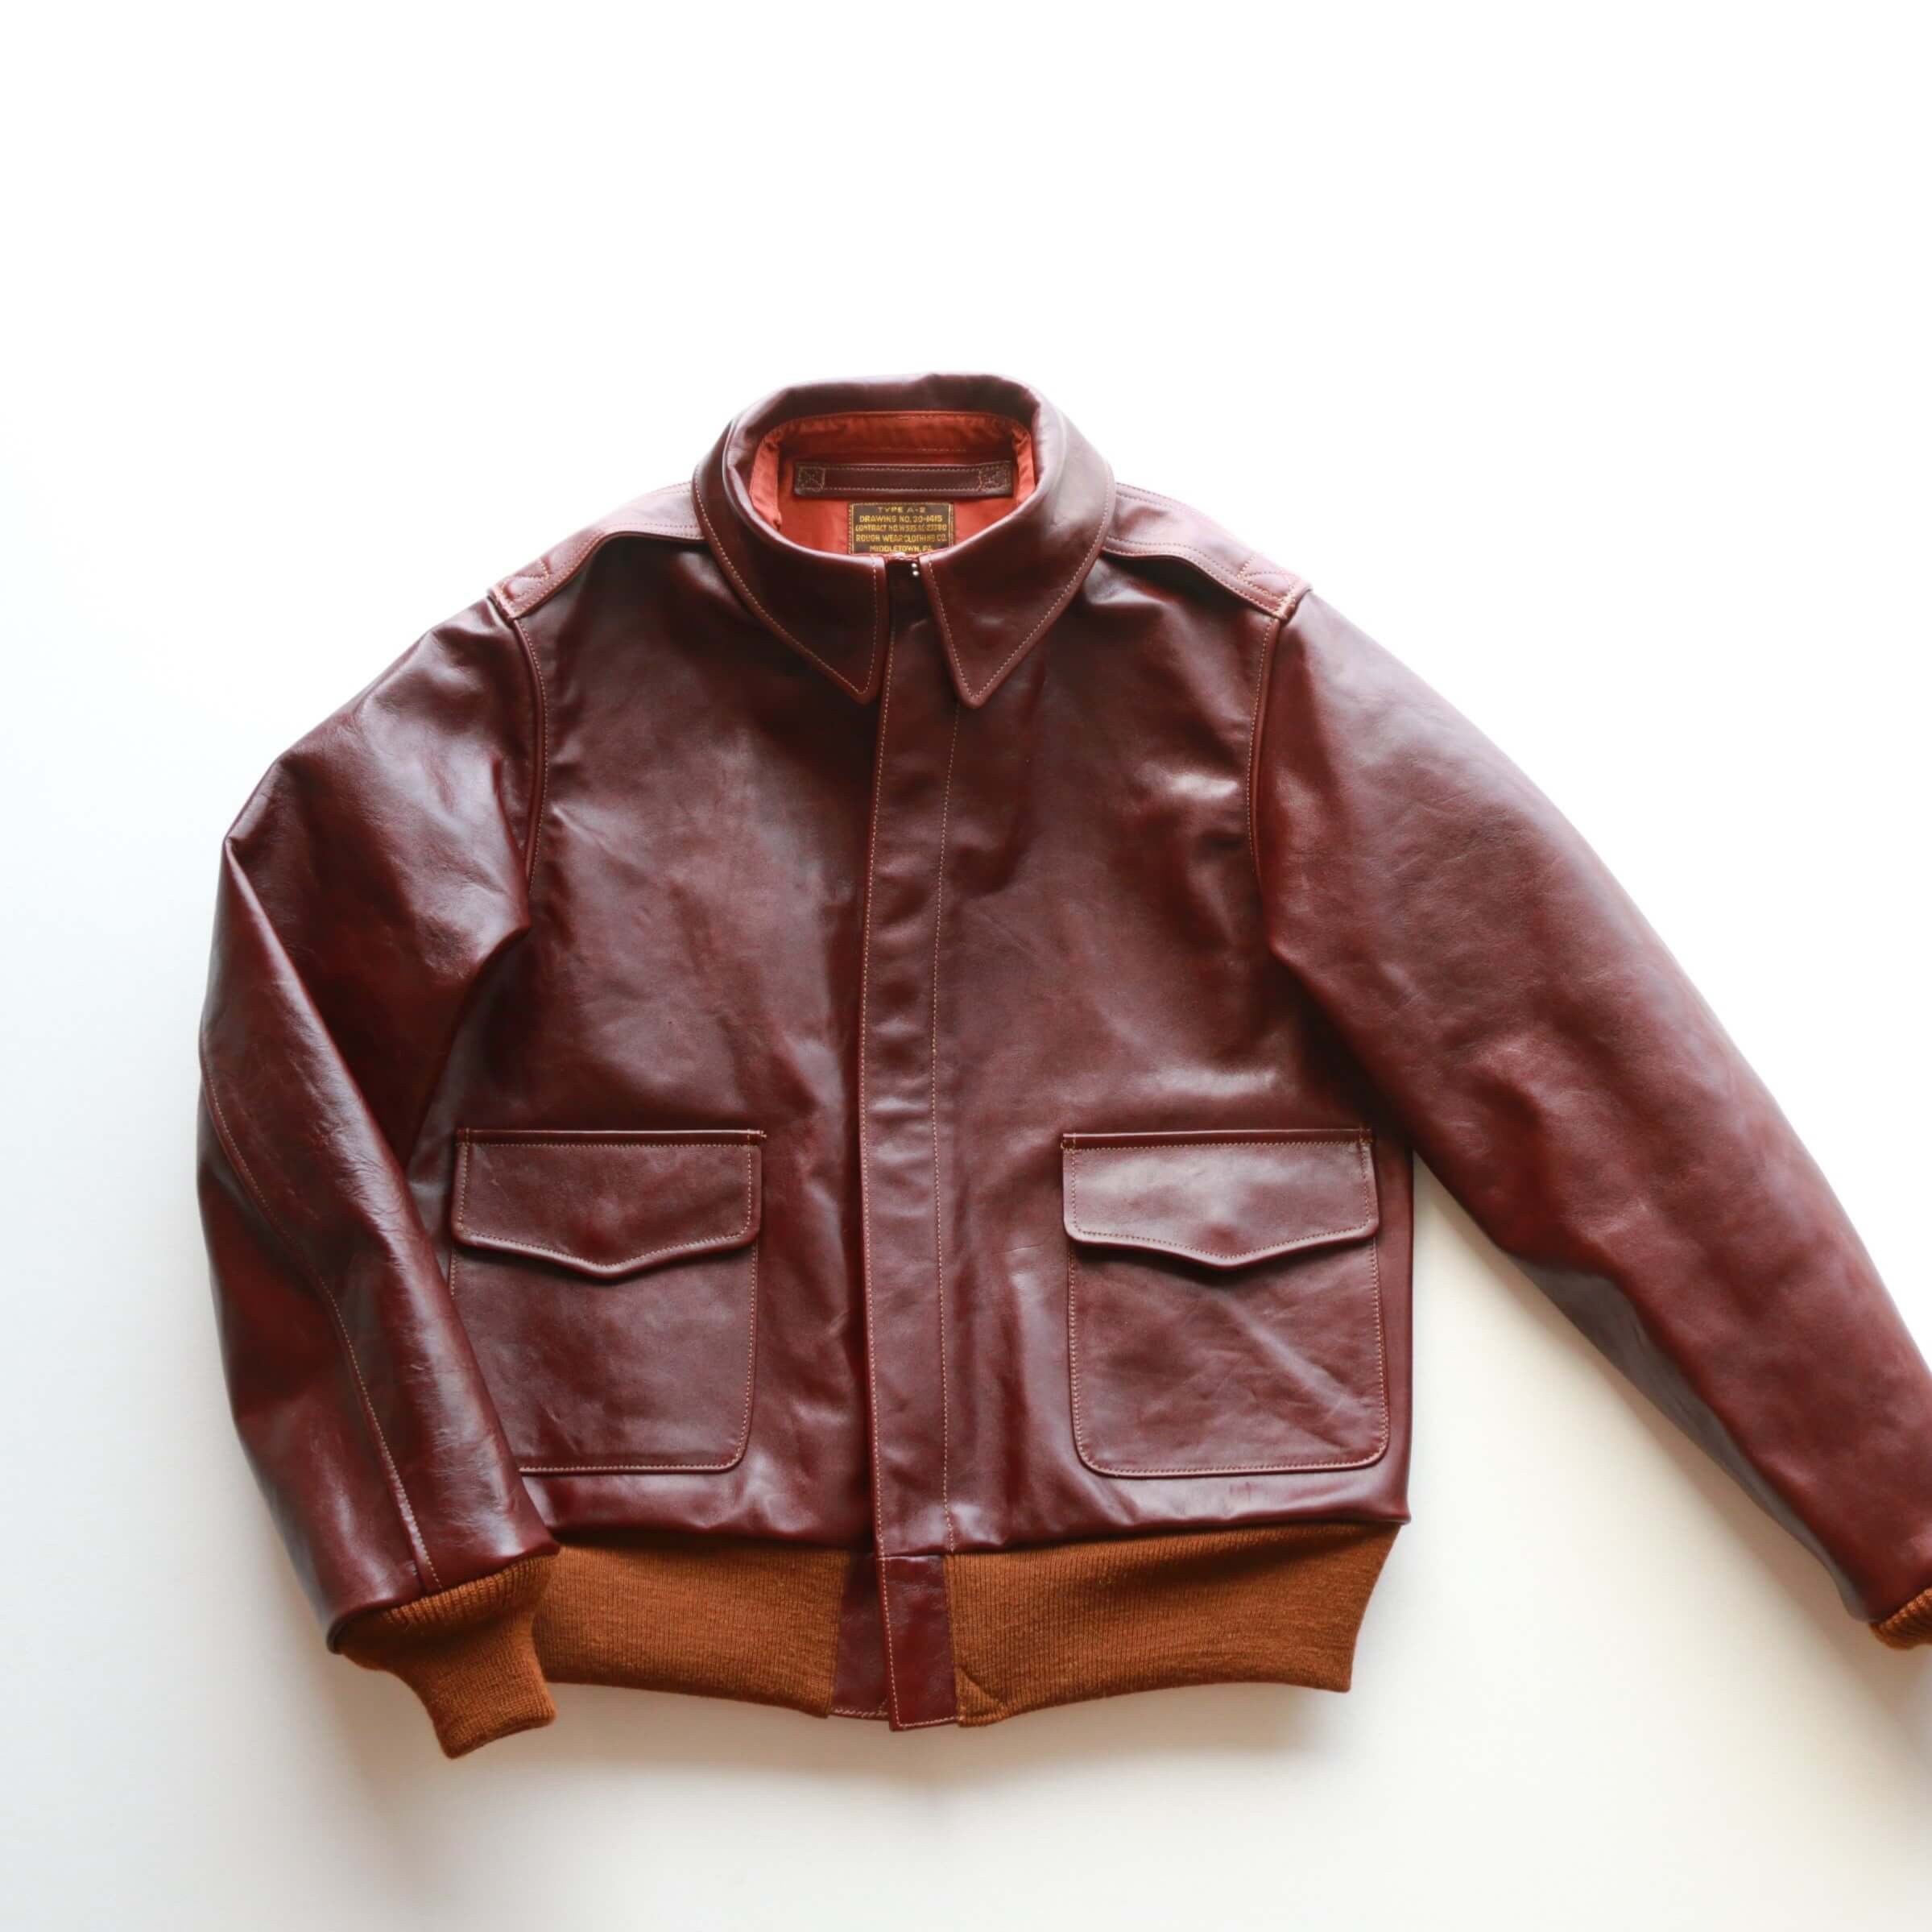 Buzz Rickson's バズリクソンズ Flight Jacket type A-2 Roughwear Clothing Co. A-2 フライトジャケット BR80253